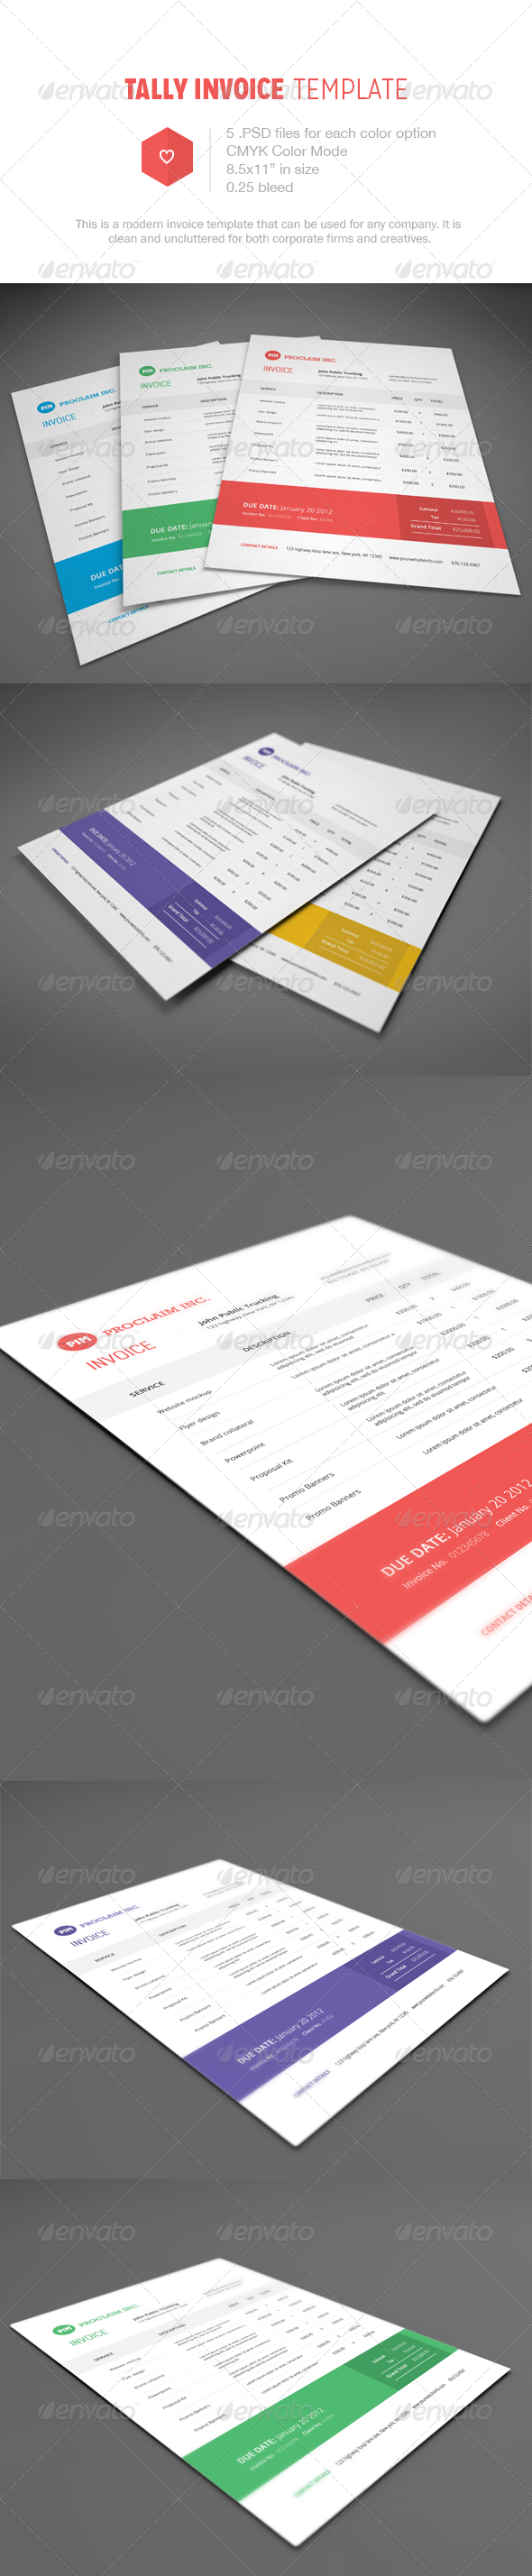 Tally Invoice Template - Proposals & Invoices Stationery